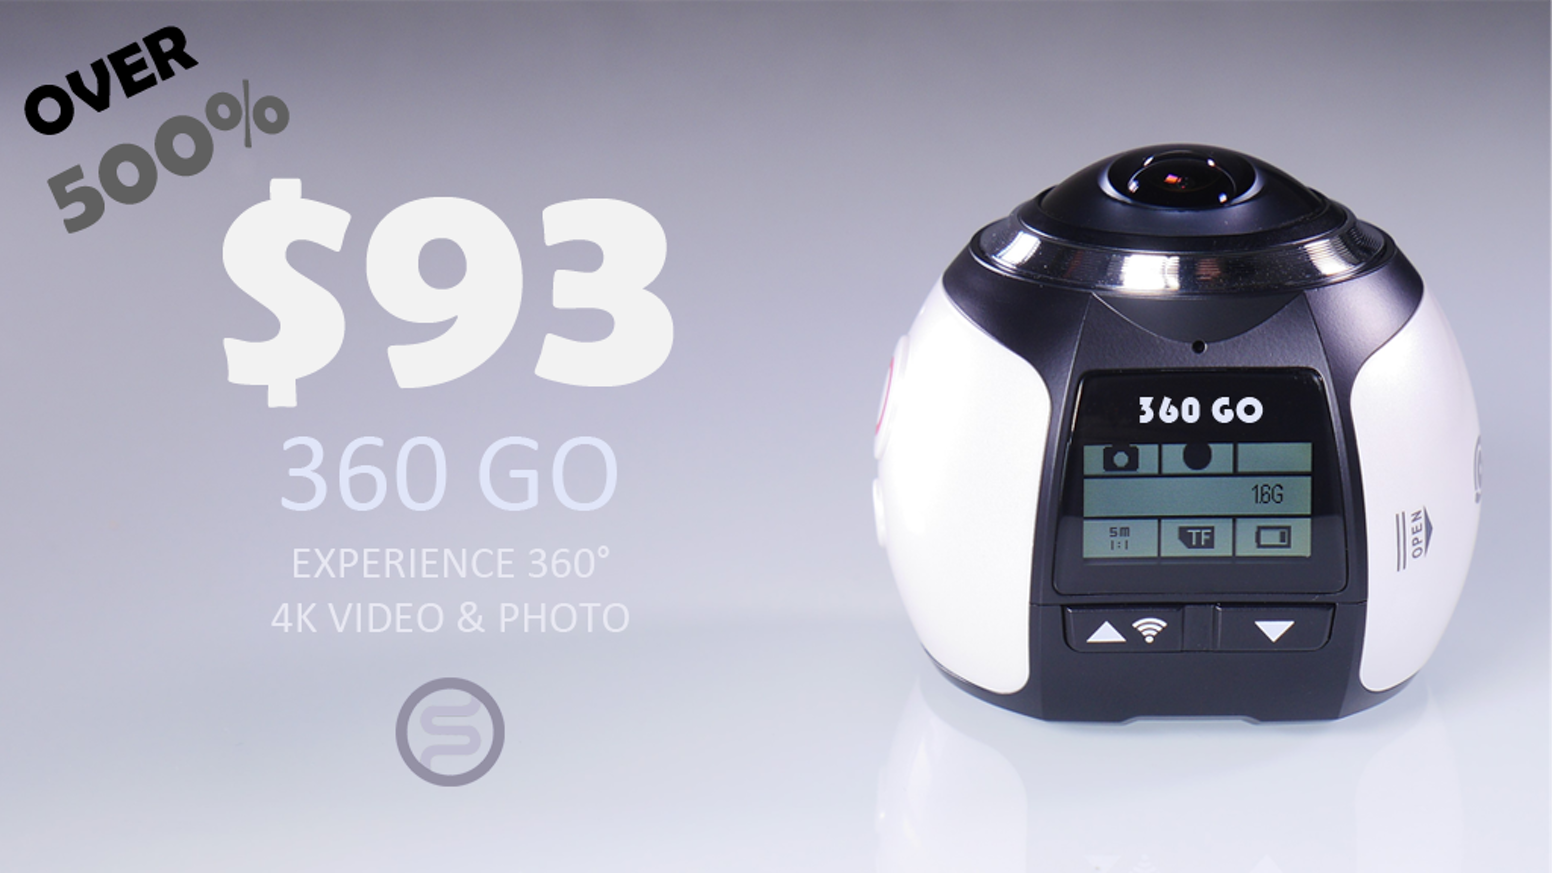 Experience 360˚ Video & Photo. Affordable Price with Good Quality. Full set of accessory. HDMI/ Micro USB/ Wifi.